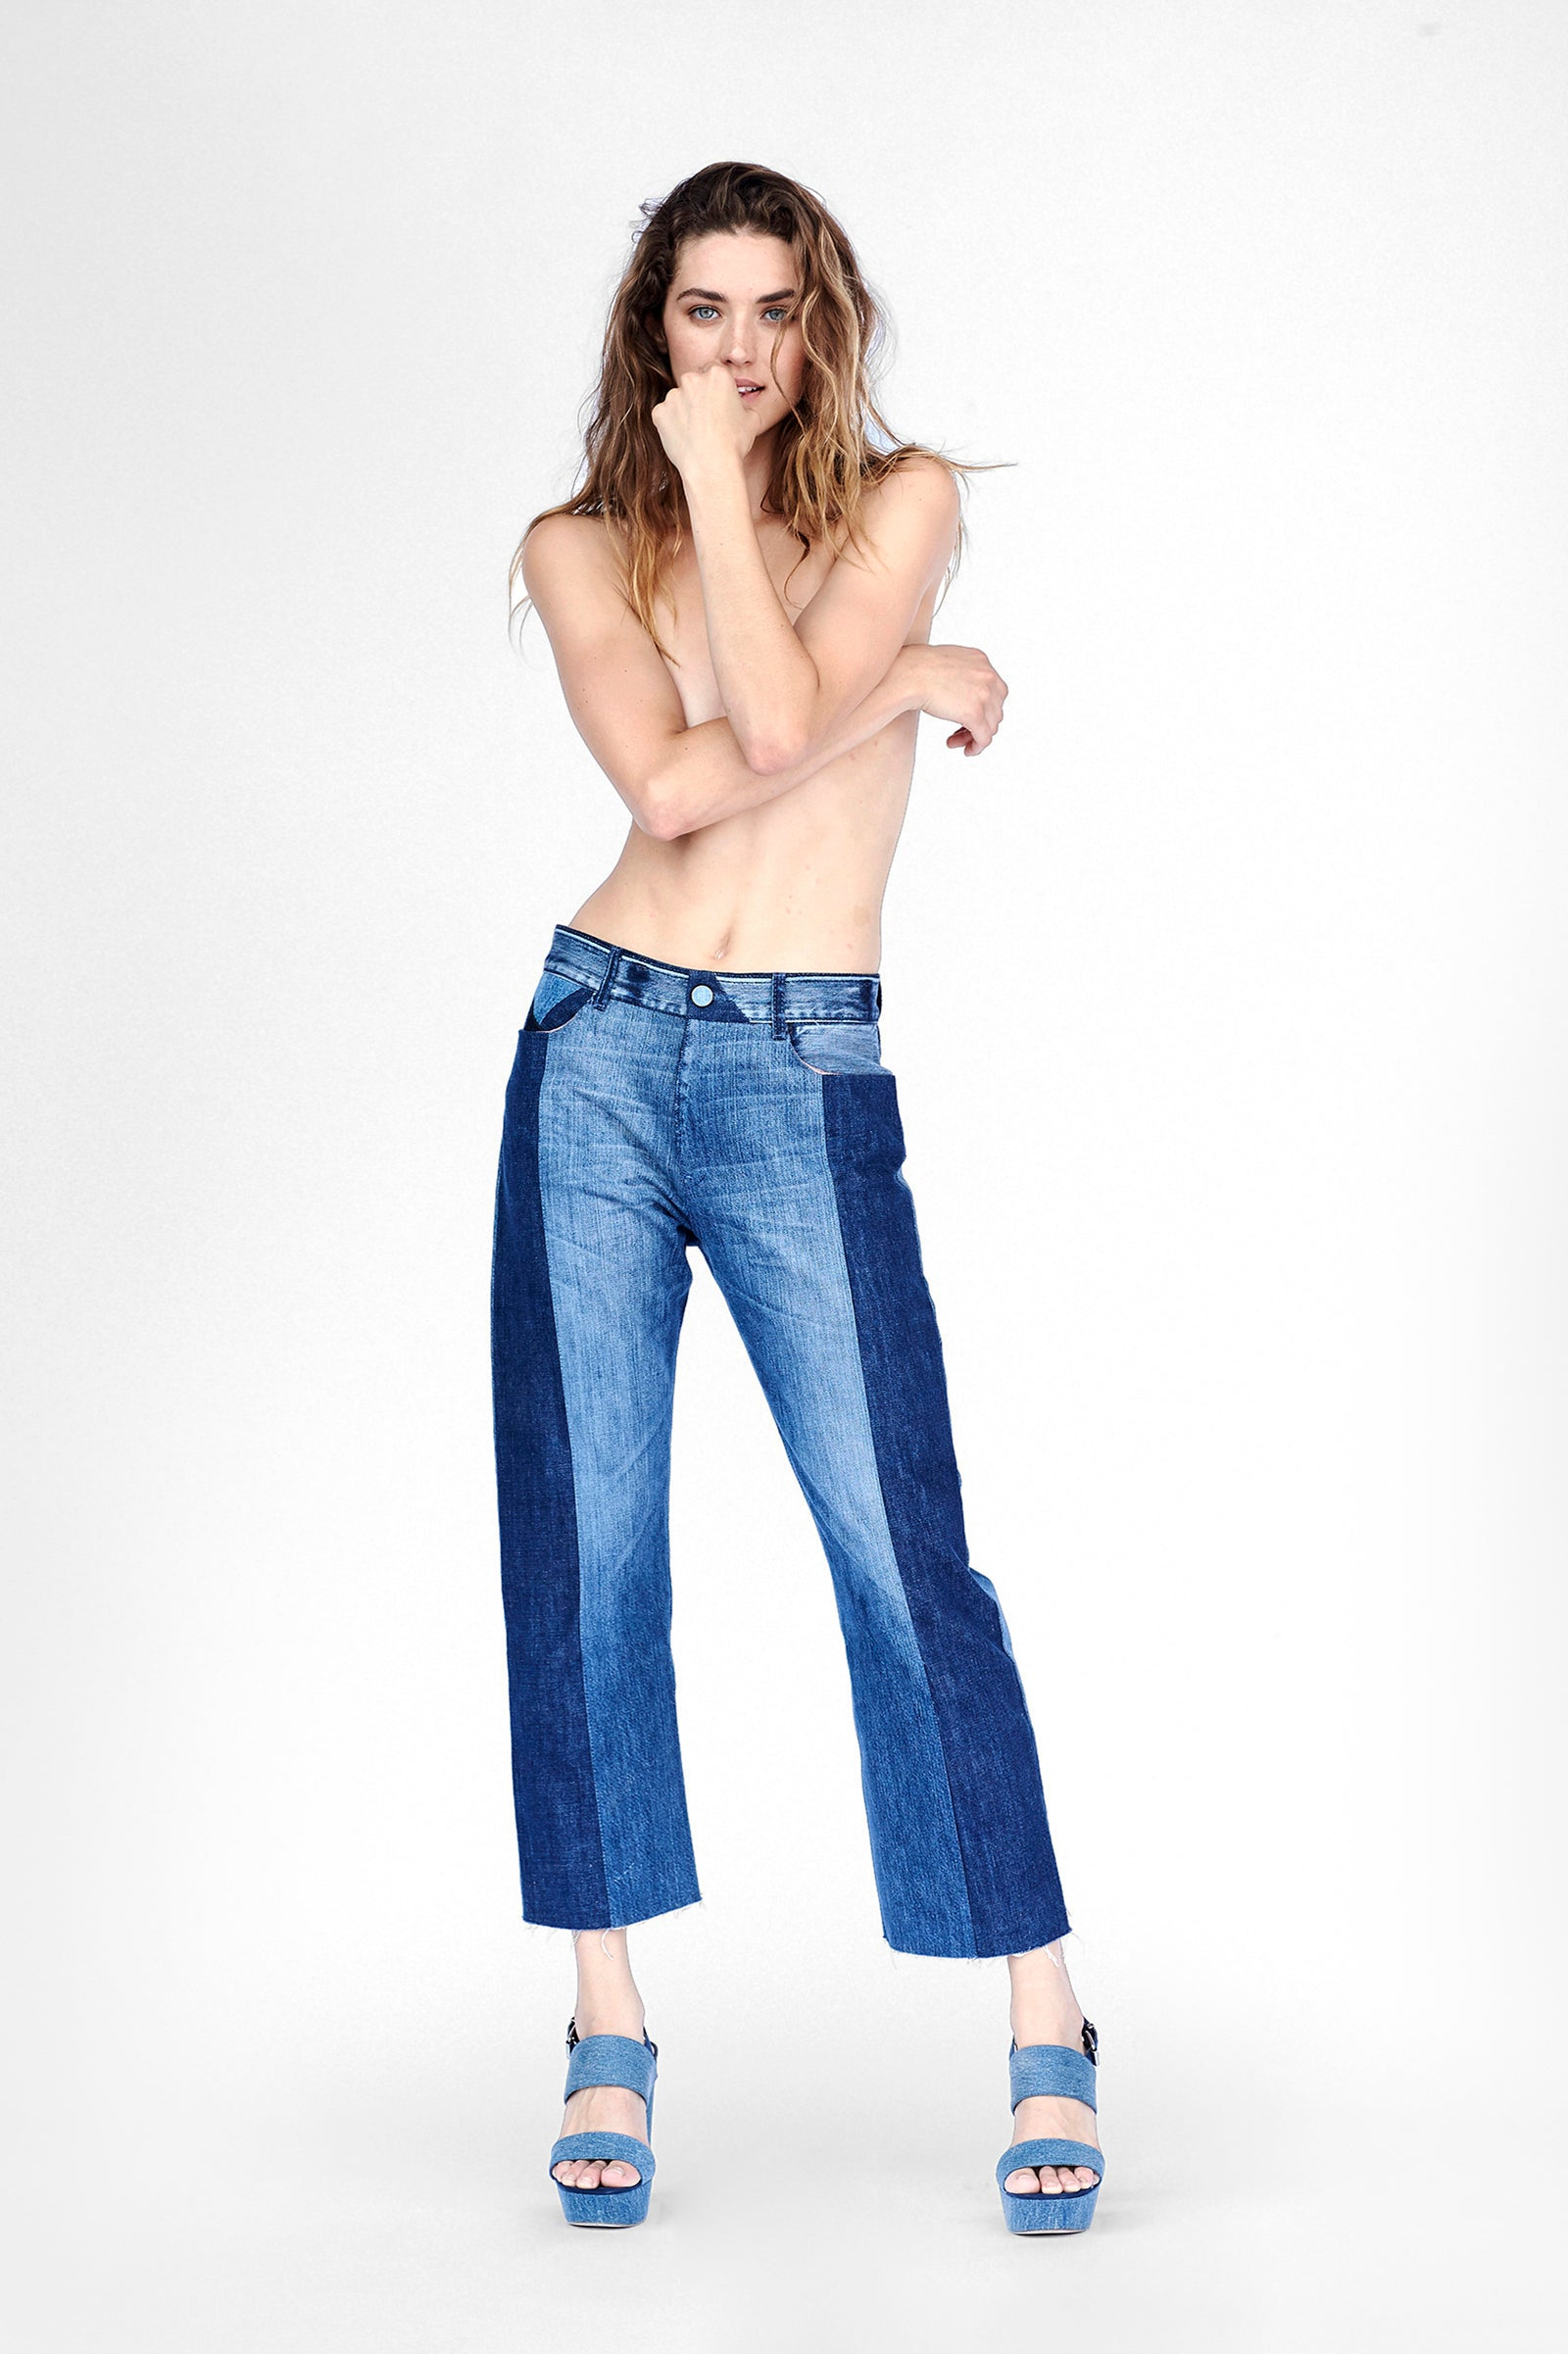 leonia cropped - size 28 - #0240